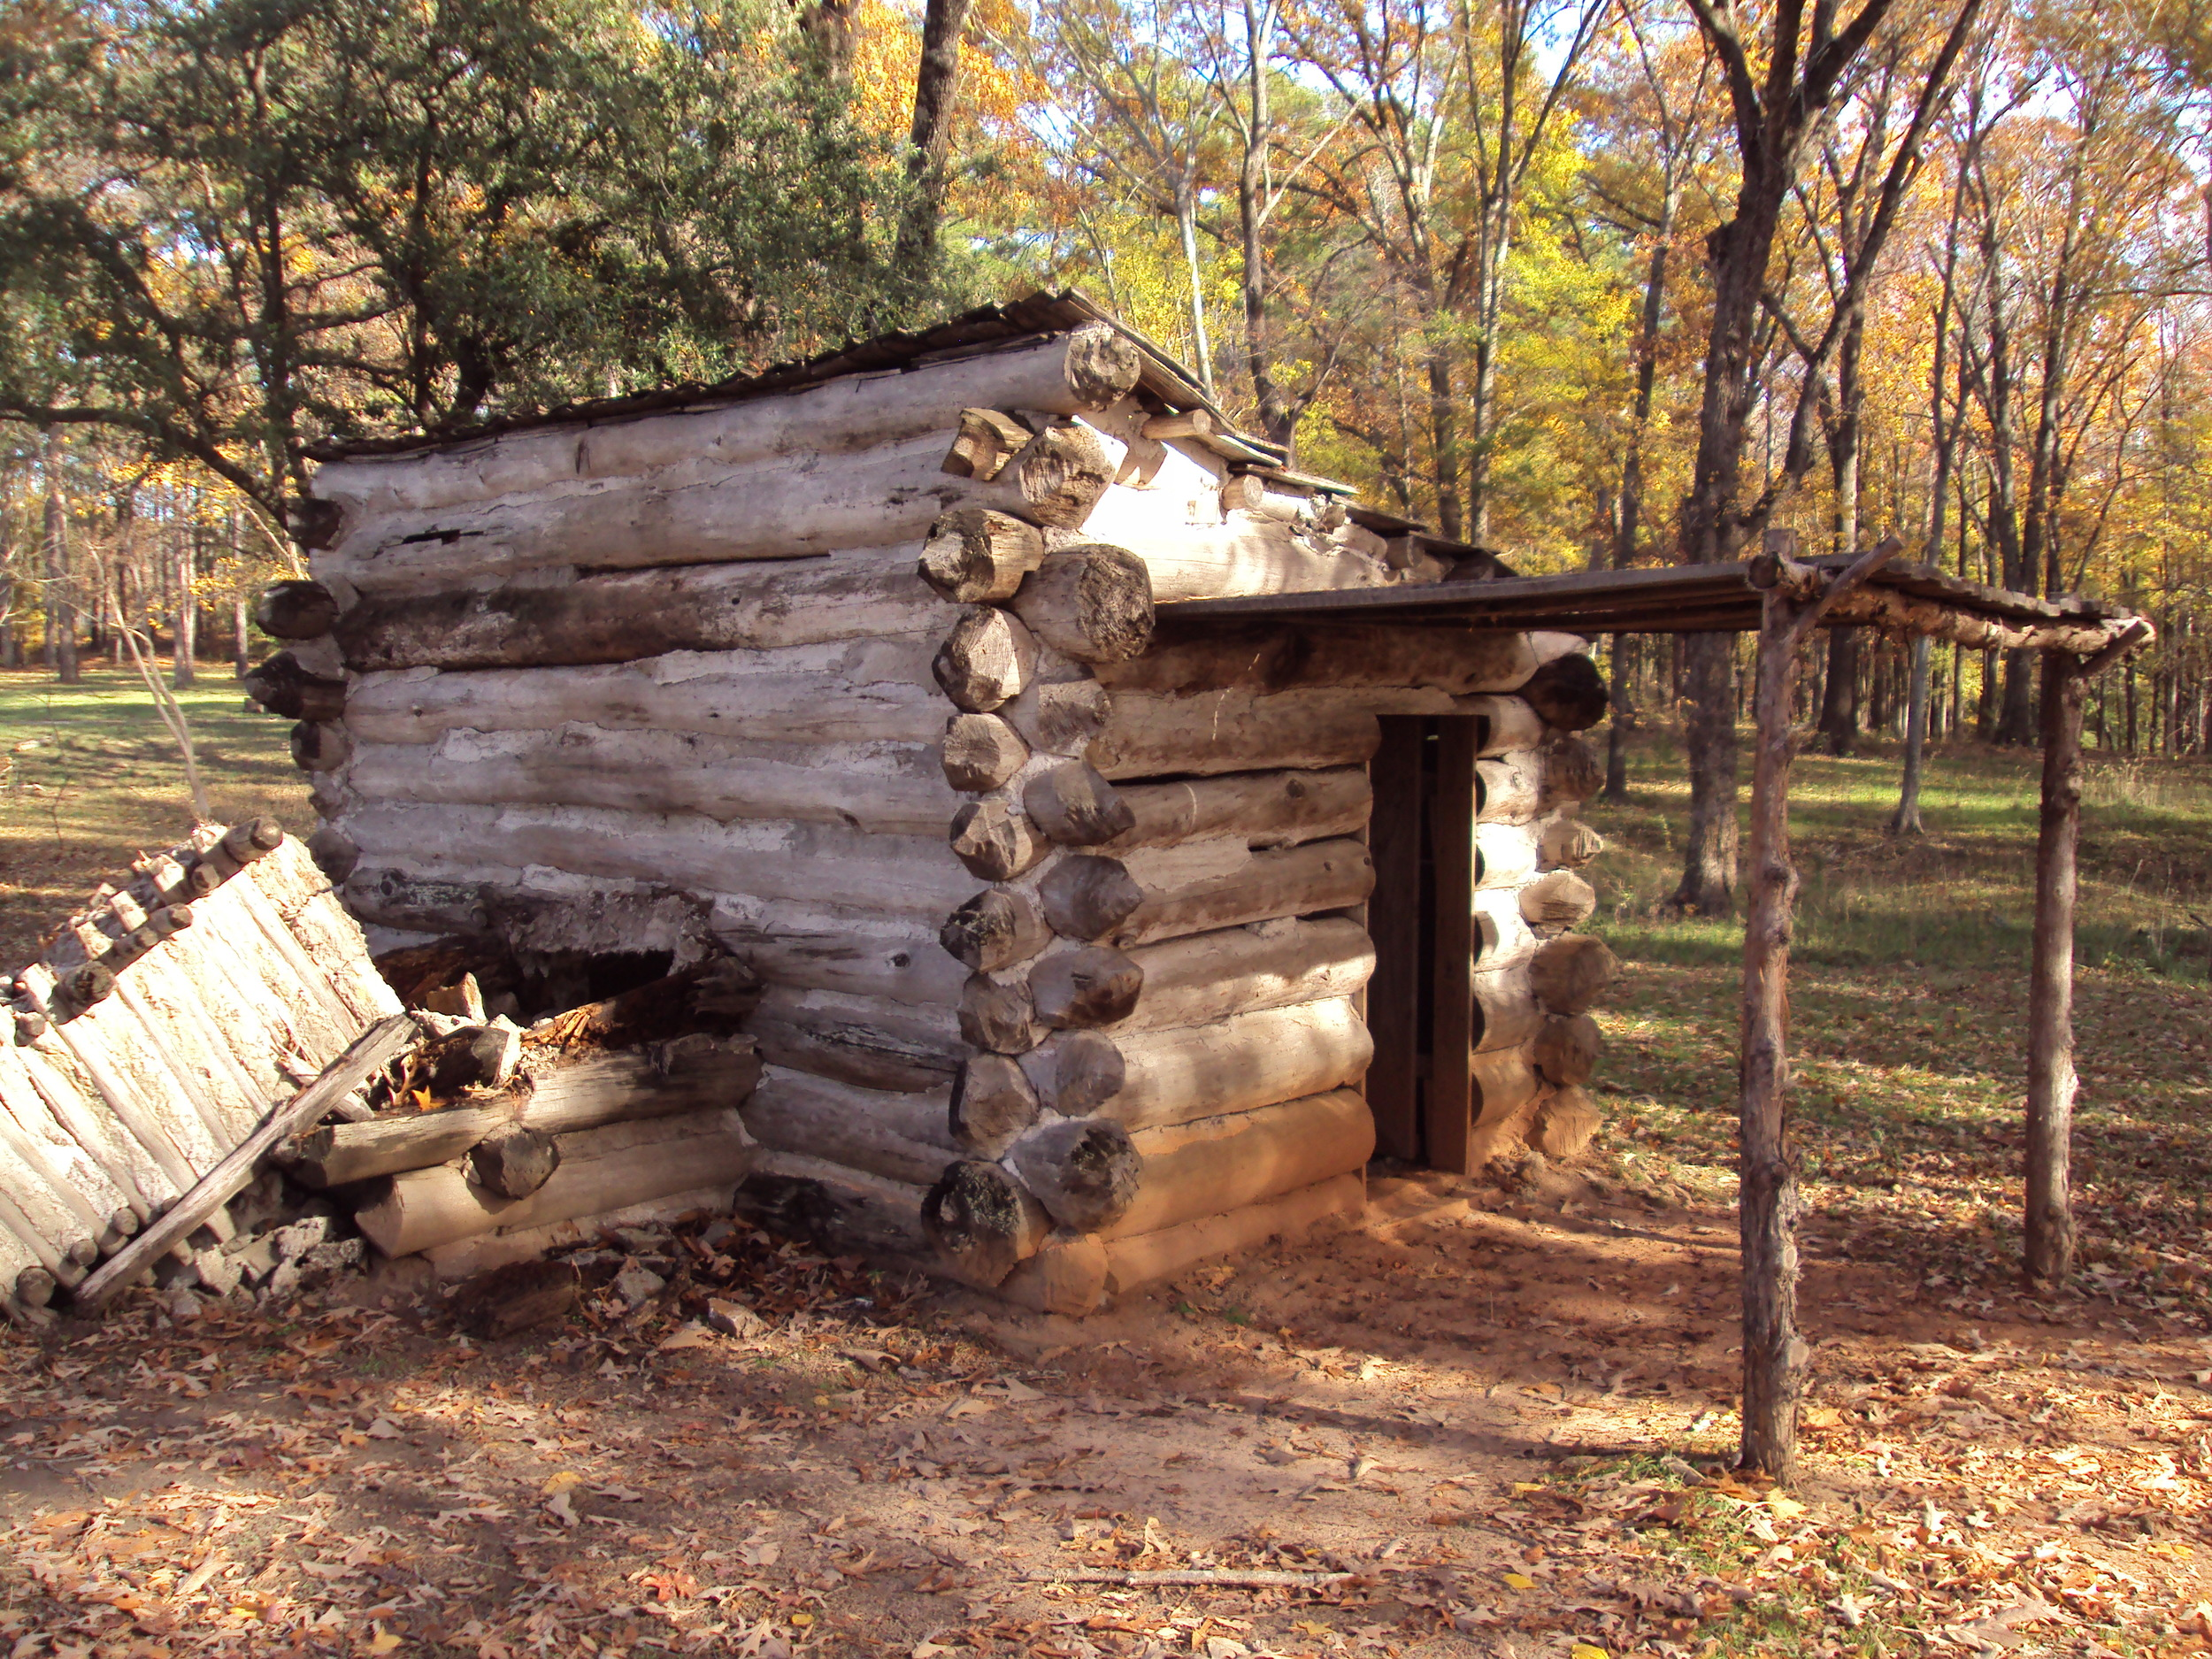 This reproduction cabin at Camp Ford today is modeled on Union Lieutenant Colonel J.B. Leake's wartime cabin.